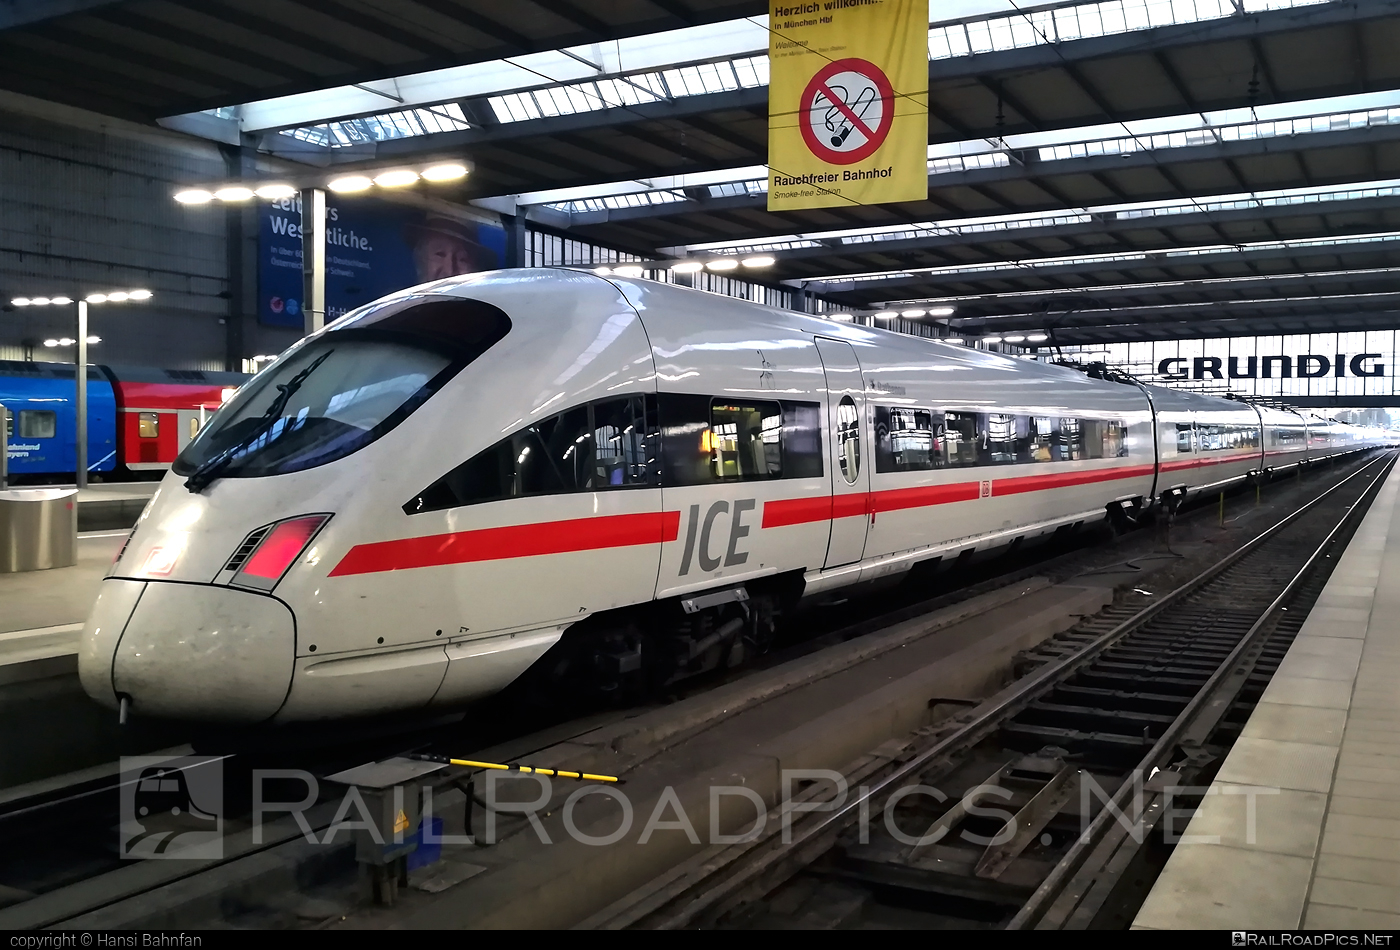 Consortium DWA ICE T - 411 567-1 operated by Deutsche Bahn / DB AG #consortiumdwa #db #dbicet #deutschebahn #dwa #ice #icettrain